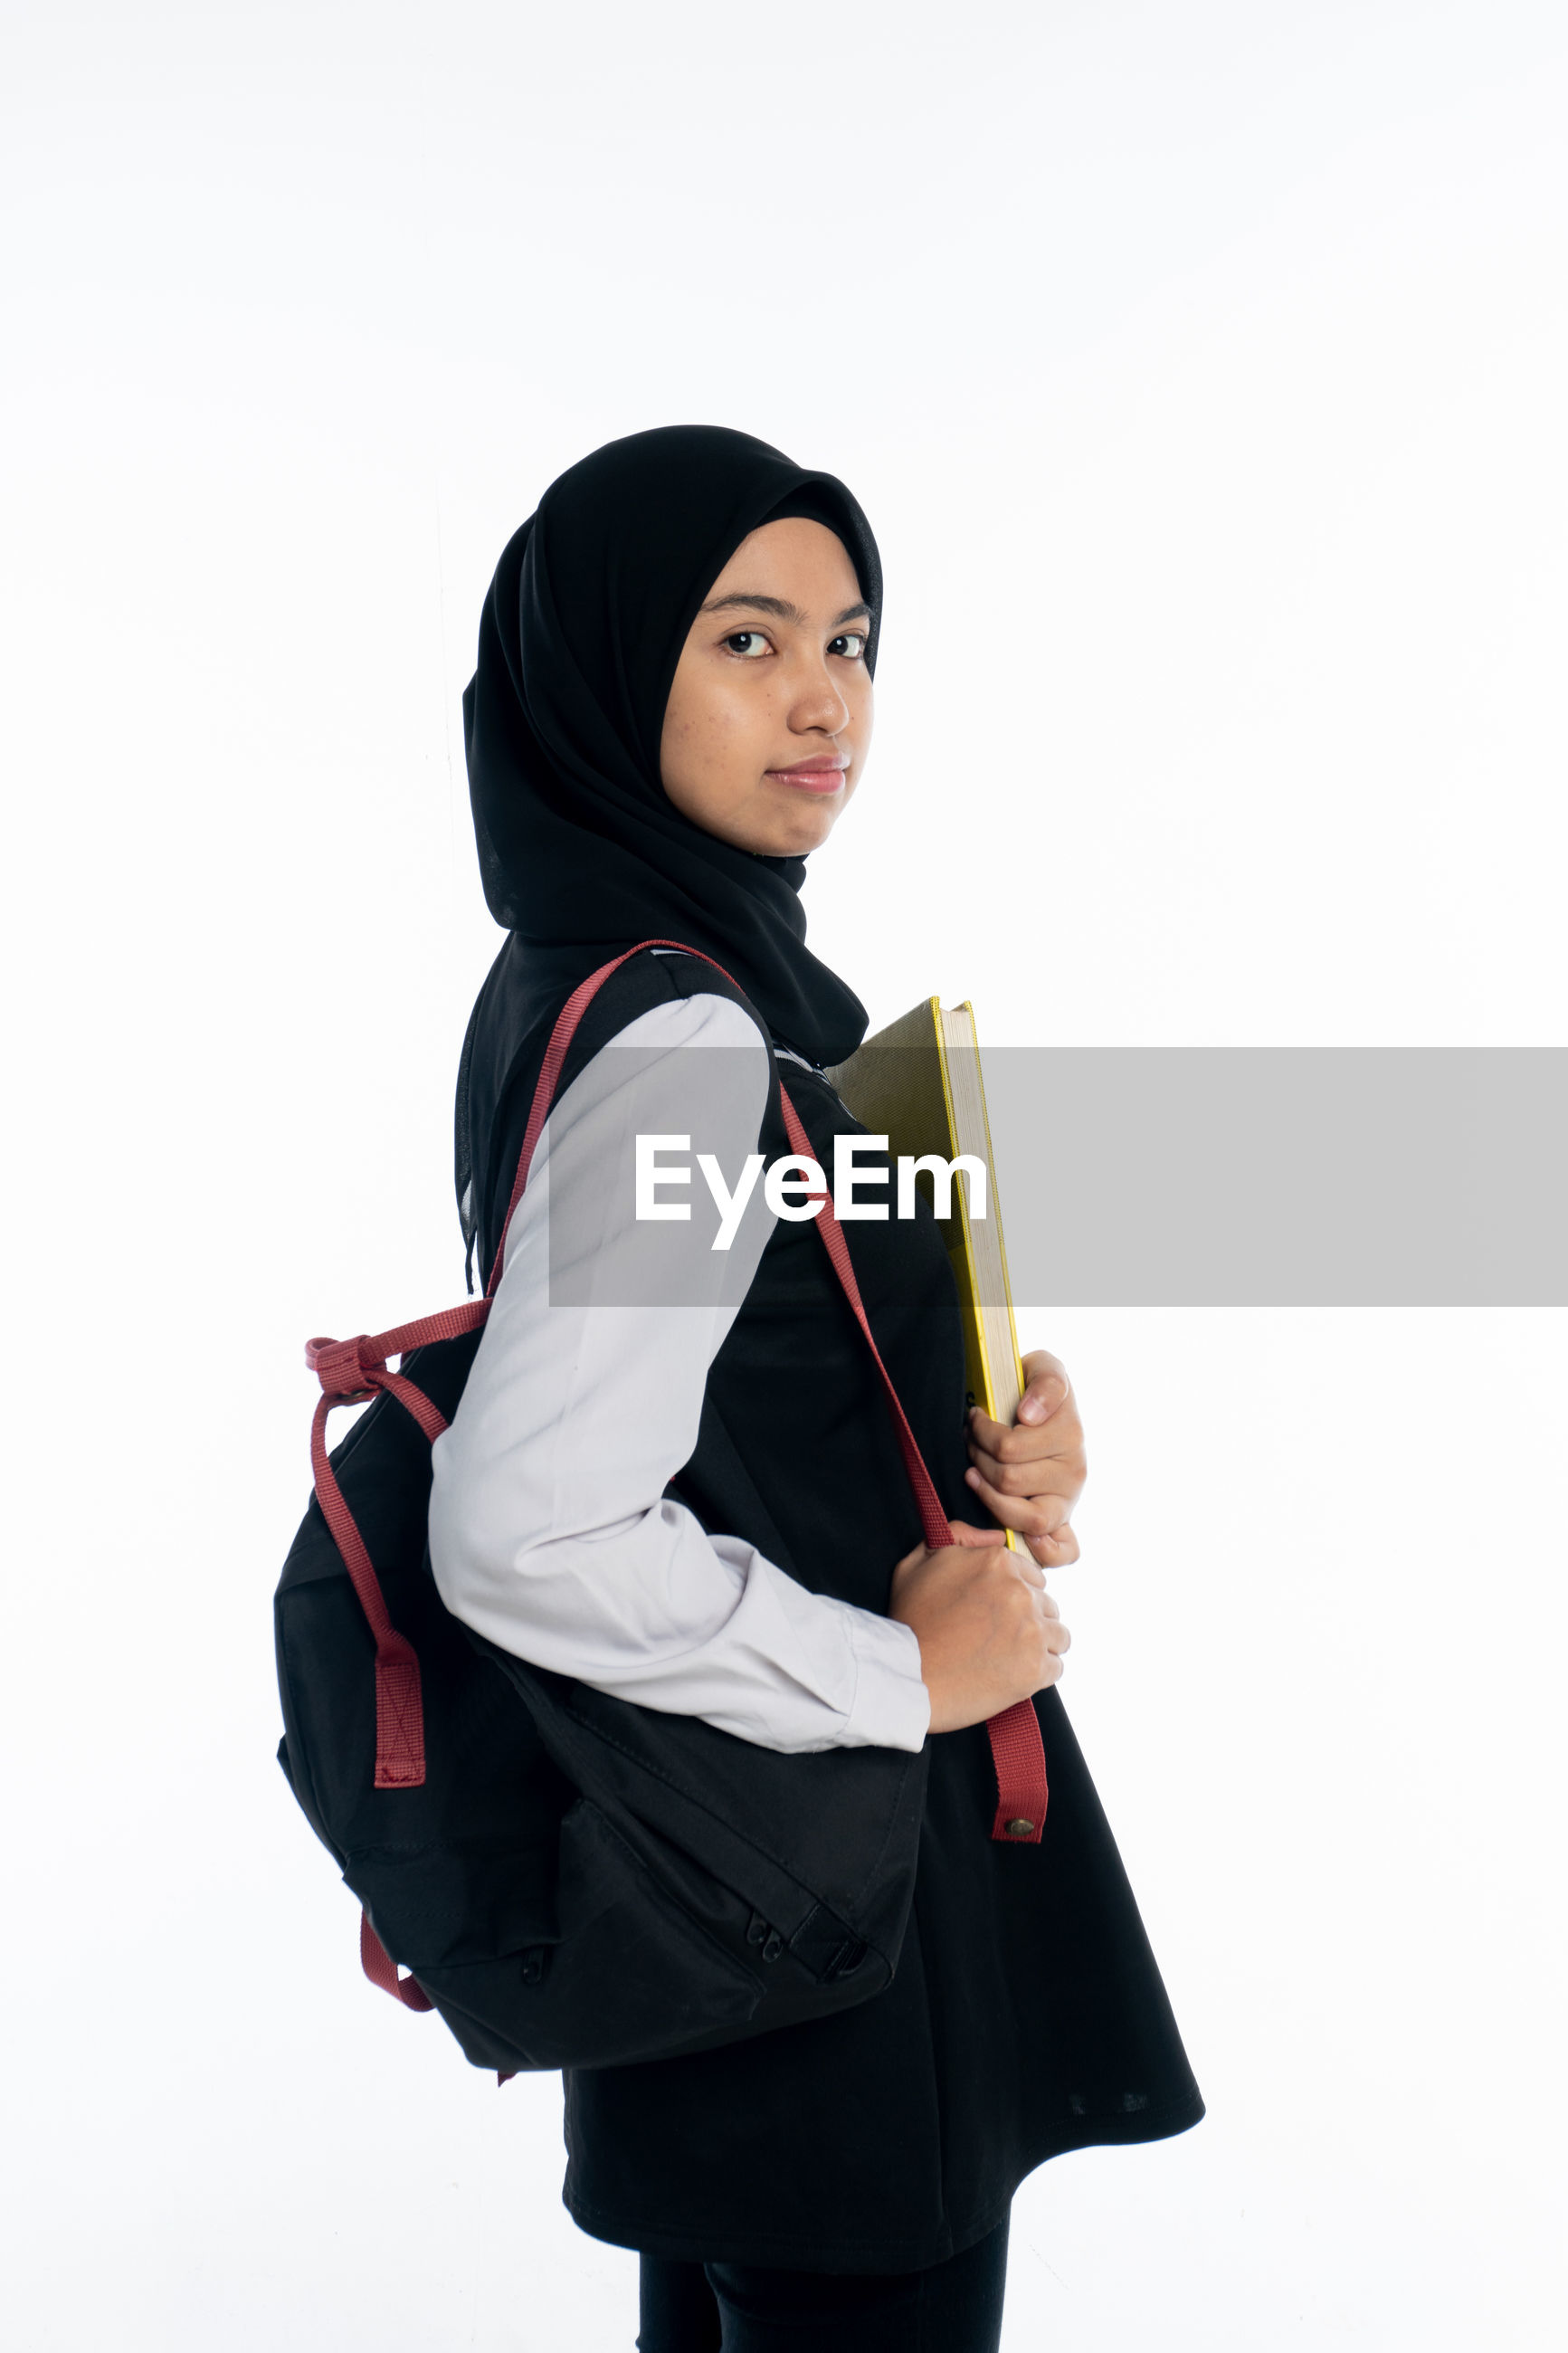 Portrait of young woman with backpack and book standing against white background